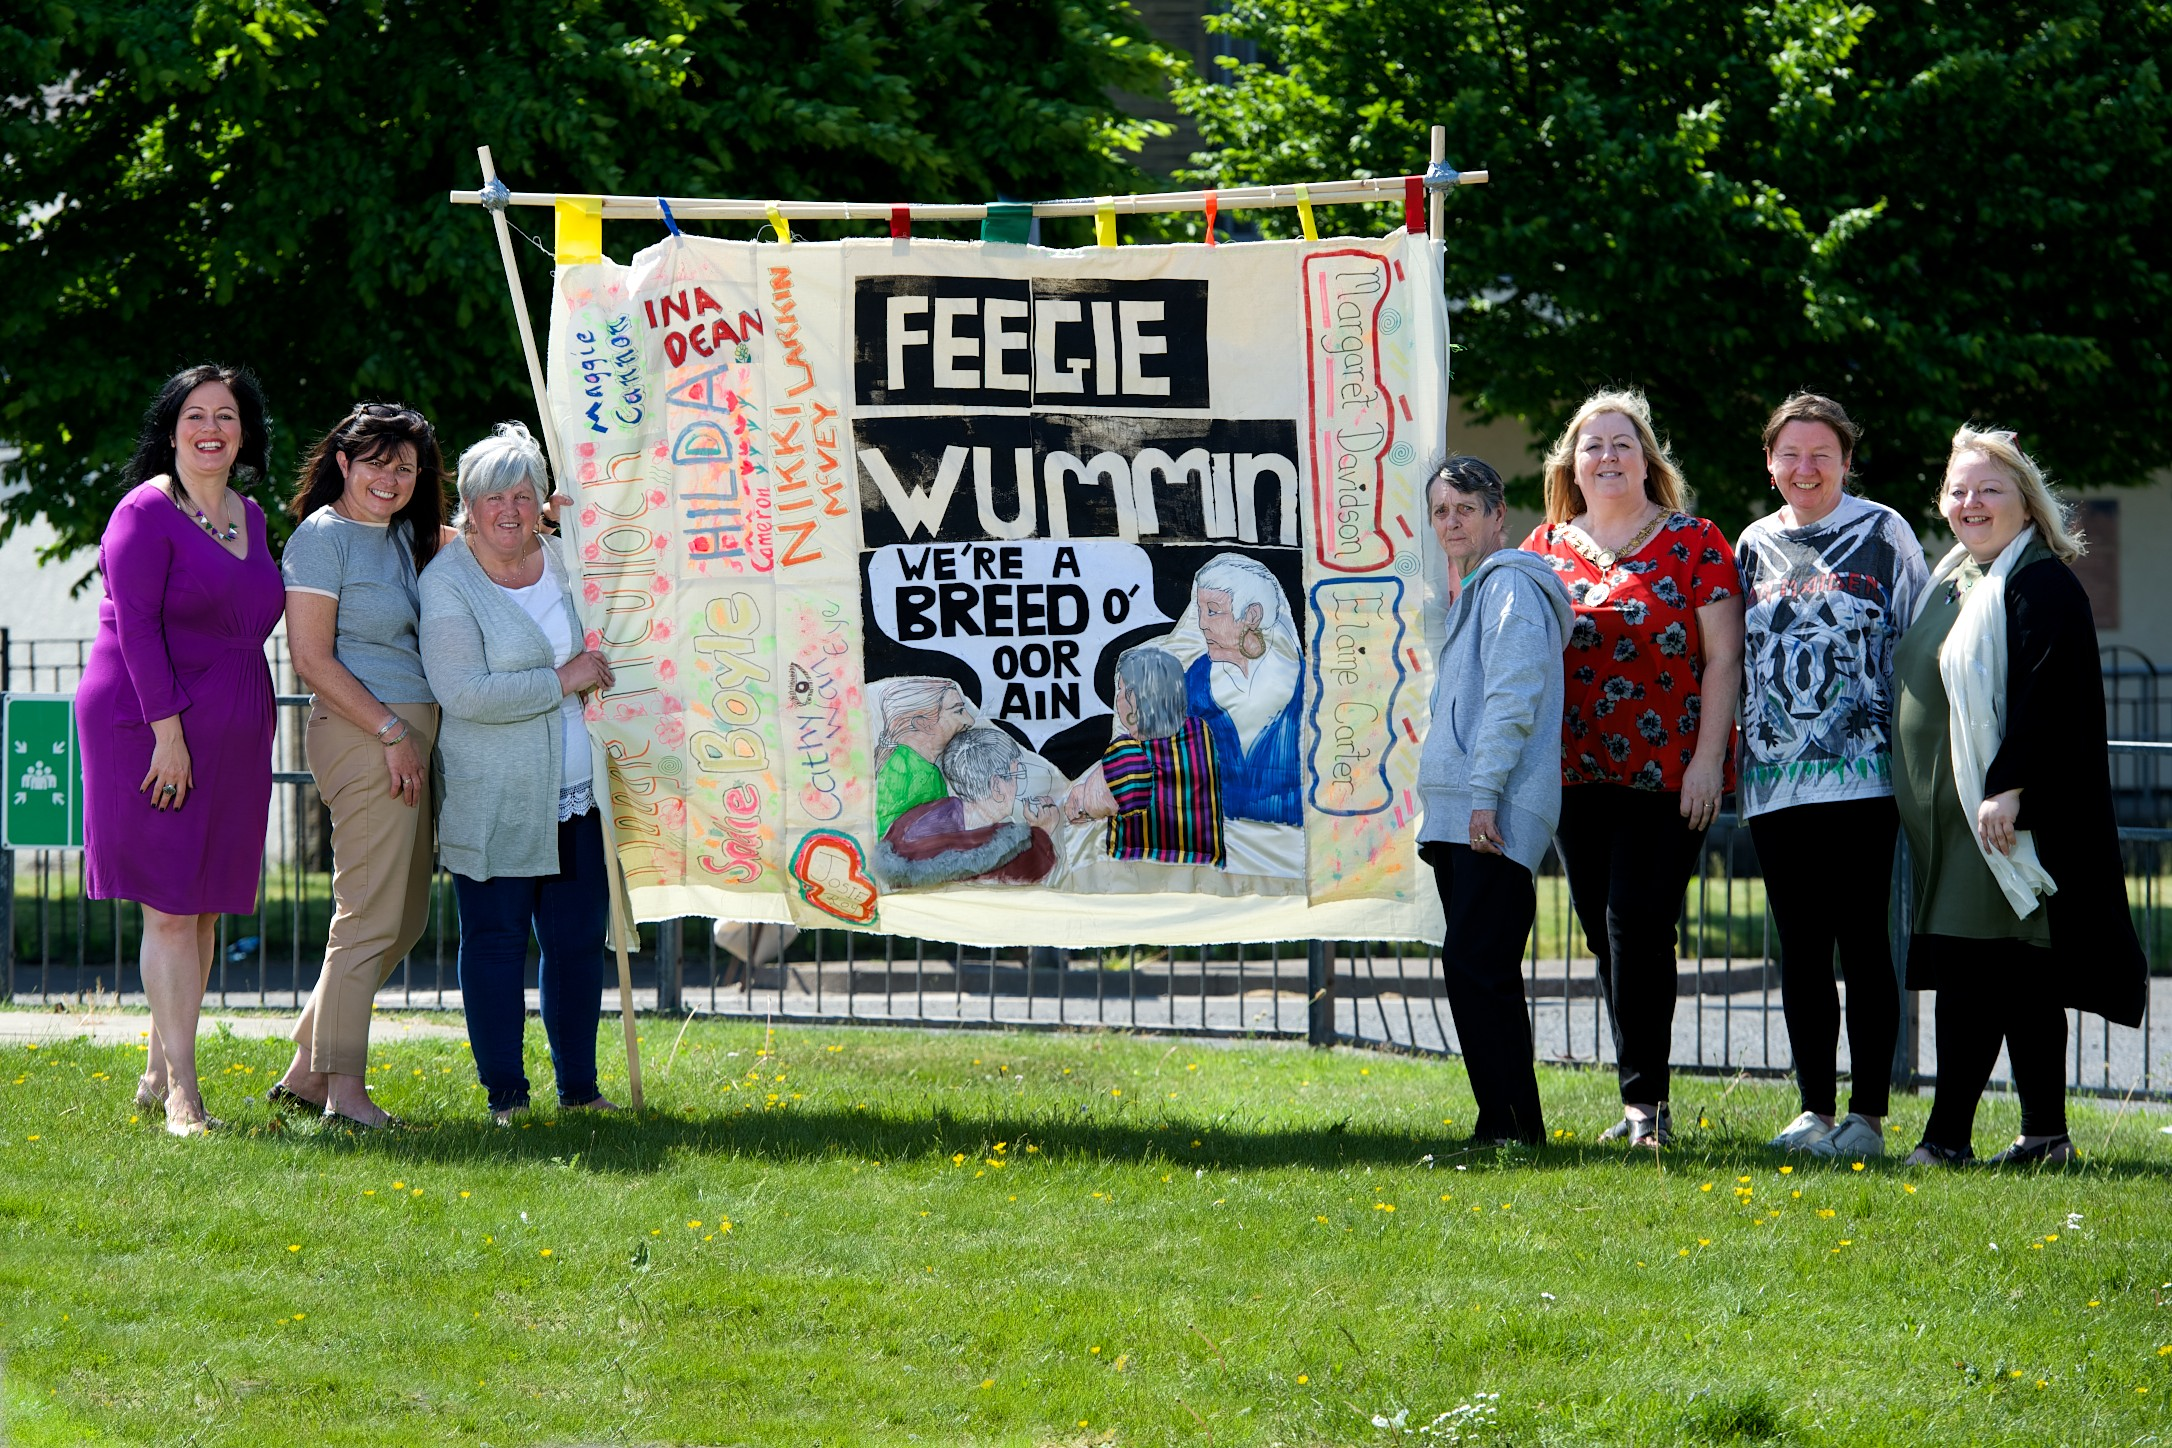 Group of Ferguslie women create artwork for march celebrating women's rights